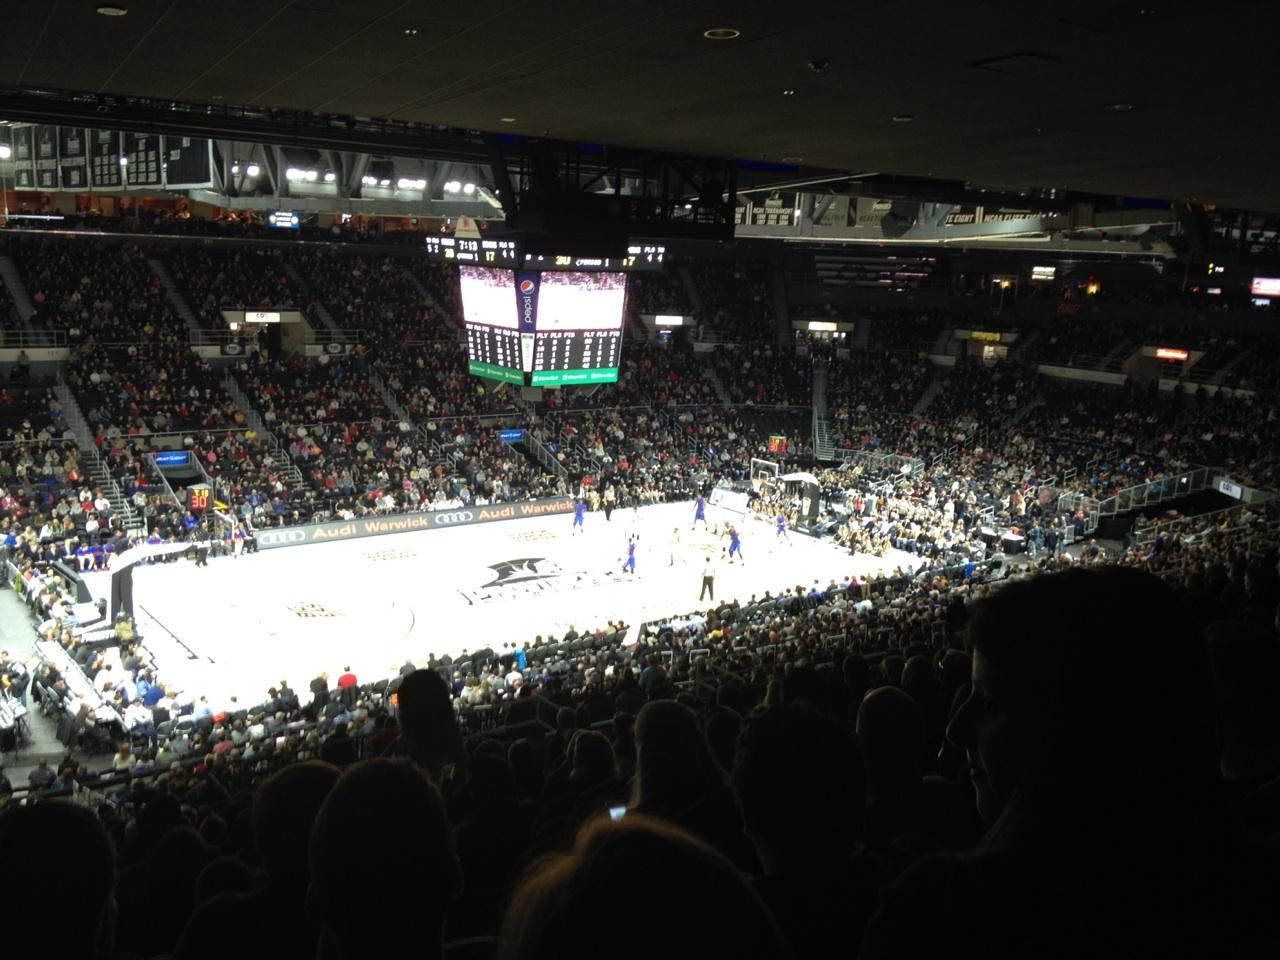 Dunkin' Donuts Center Section 214 Row T Seat 10